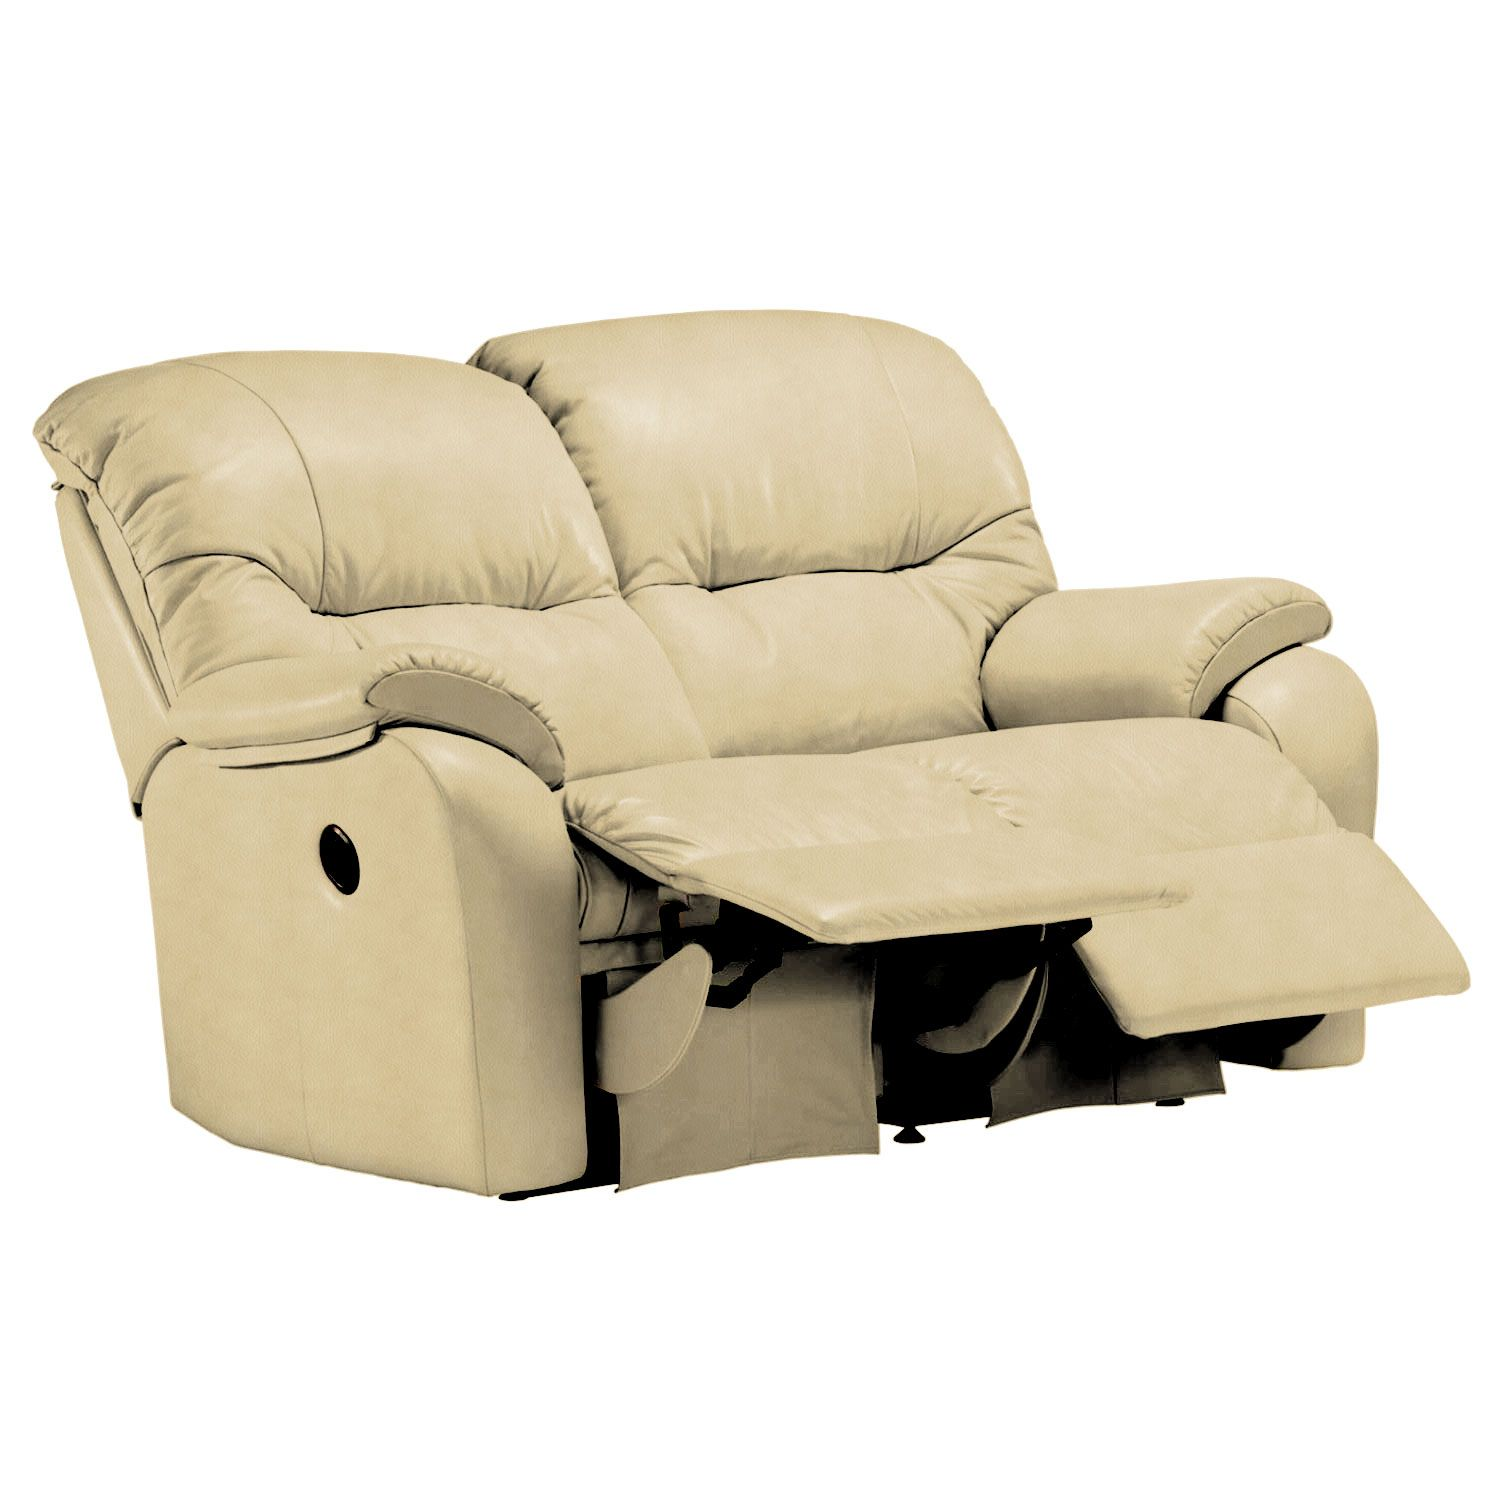 Image of G Plan Mistral 2 Seater Double Power Recliner Leather Sofa